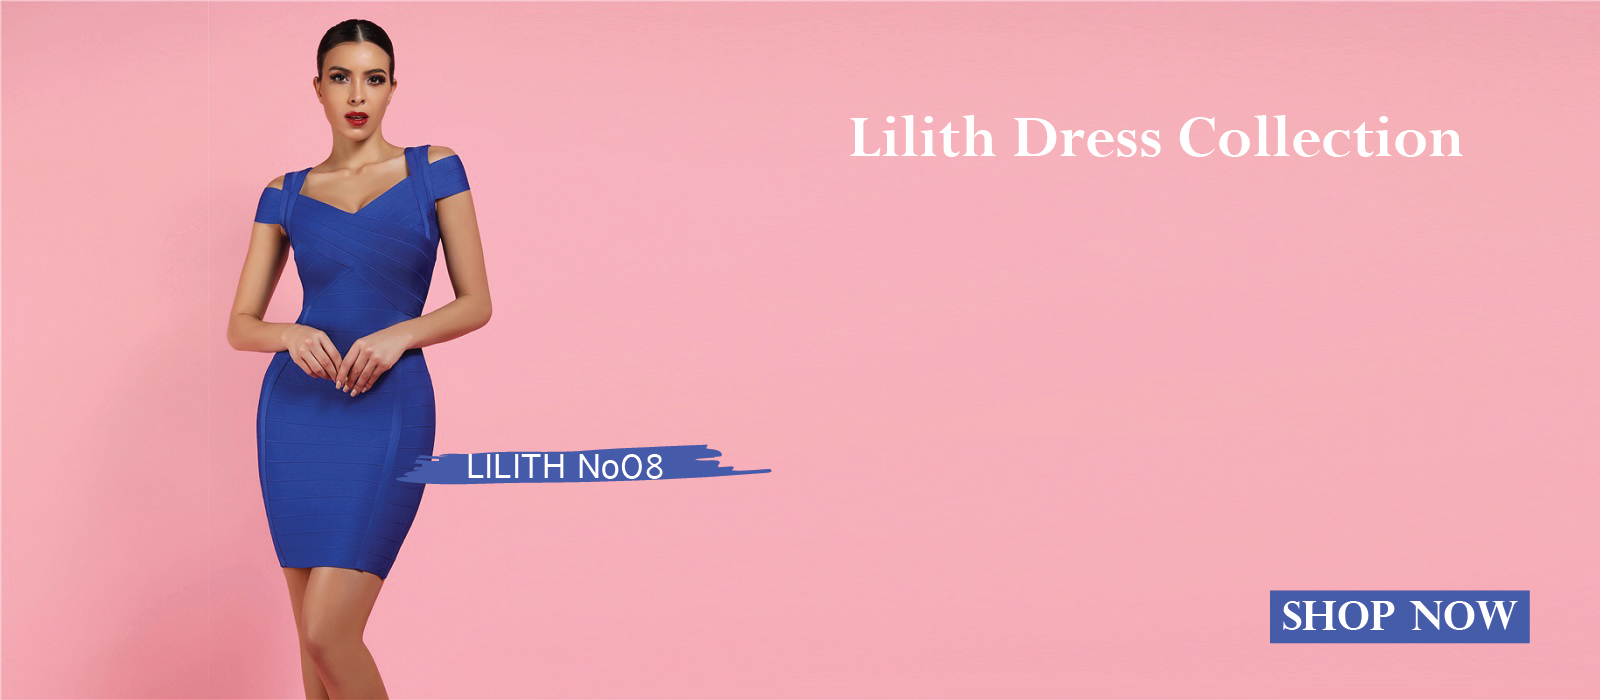 Lilith Dress Collection